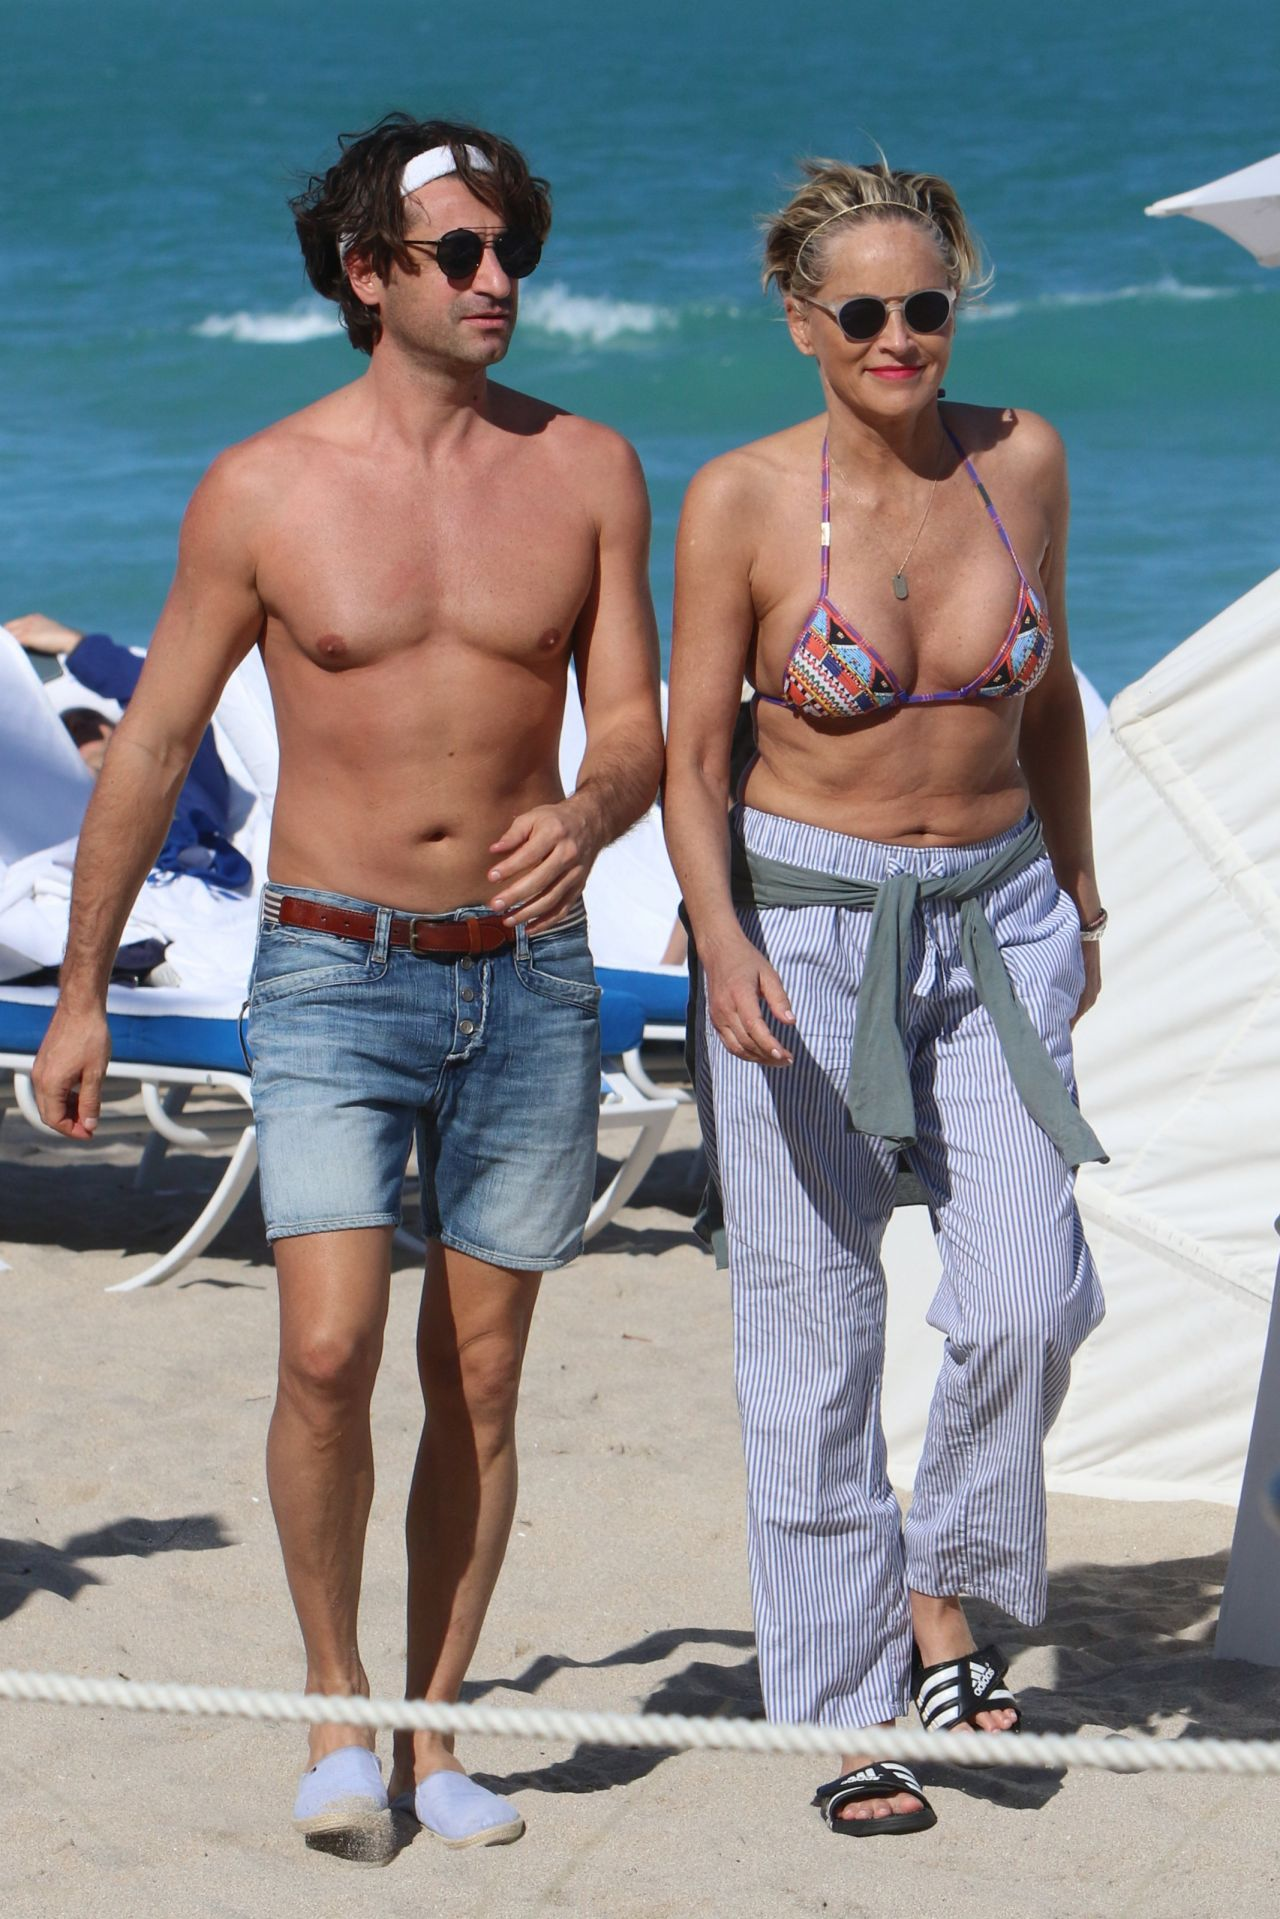 Sharon Stone in Bikini Top with her boyfriend at the beach in Miami Pic 29 of 35